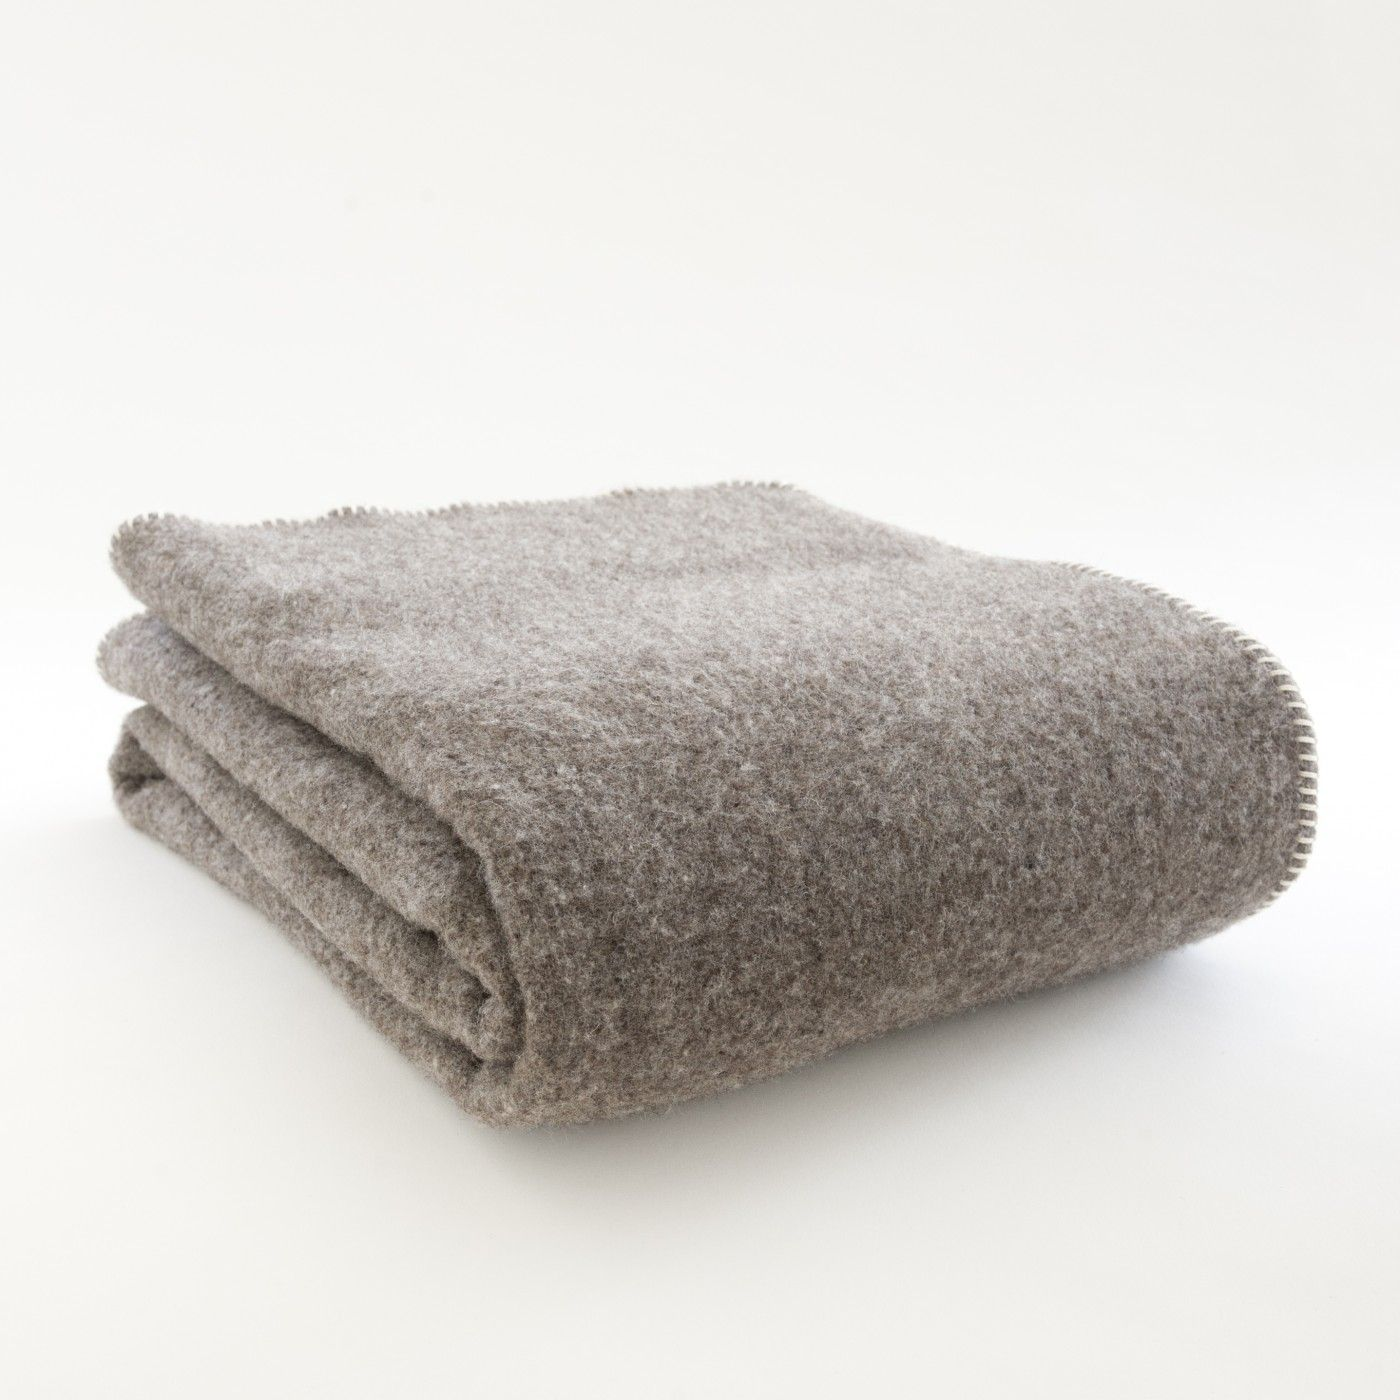 landmade - eco un-dyed pure wool blanket:  grey